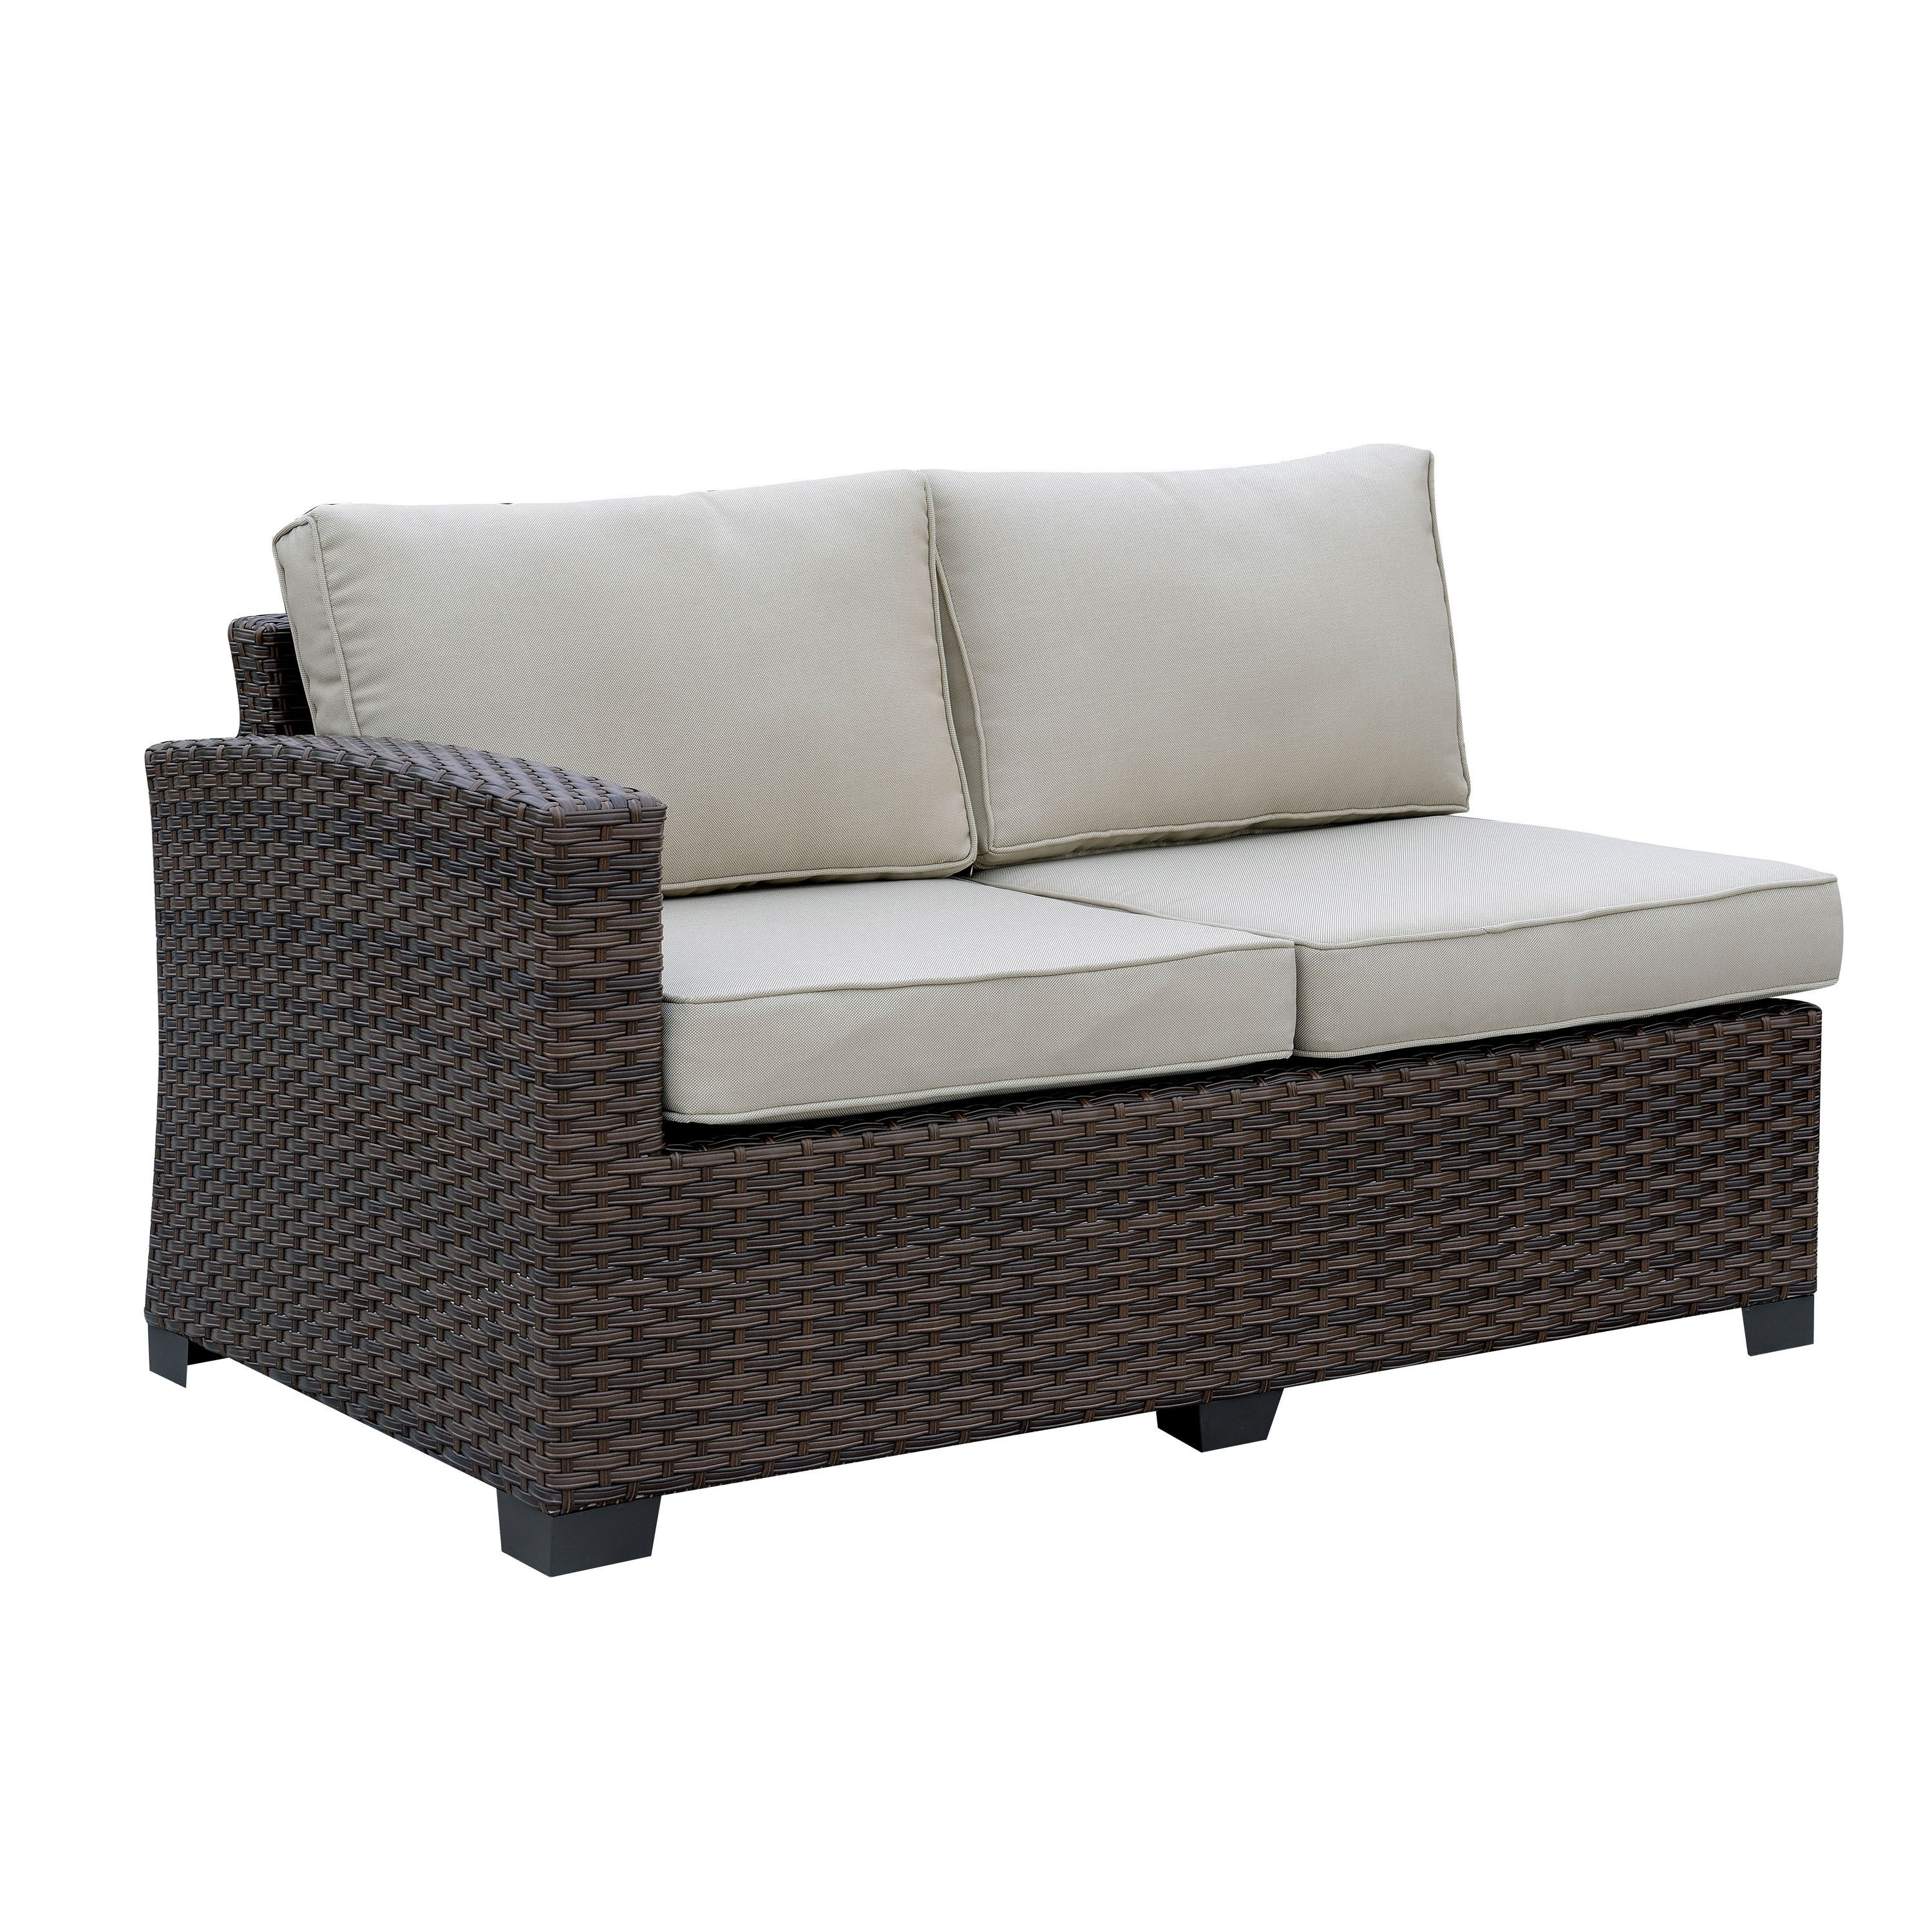 w s table htm outdoor patio sectional corner furniture category bushnell